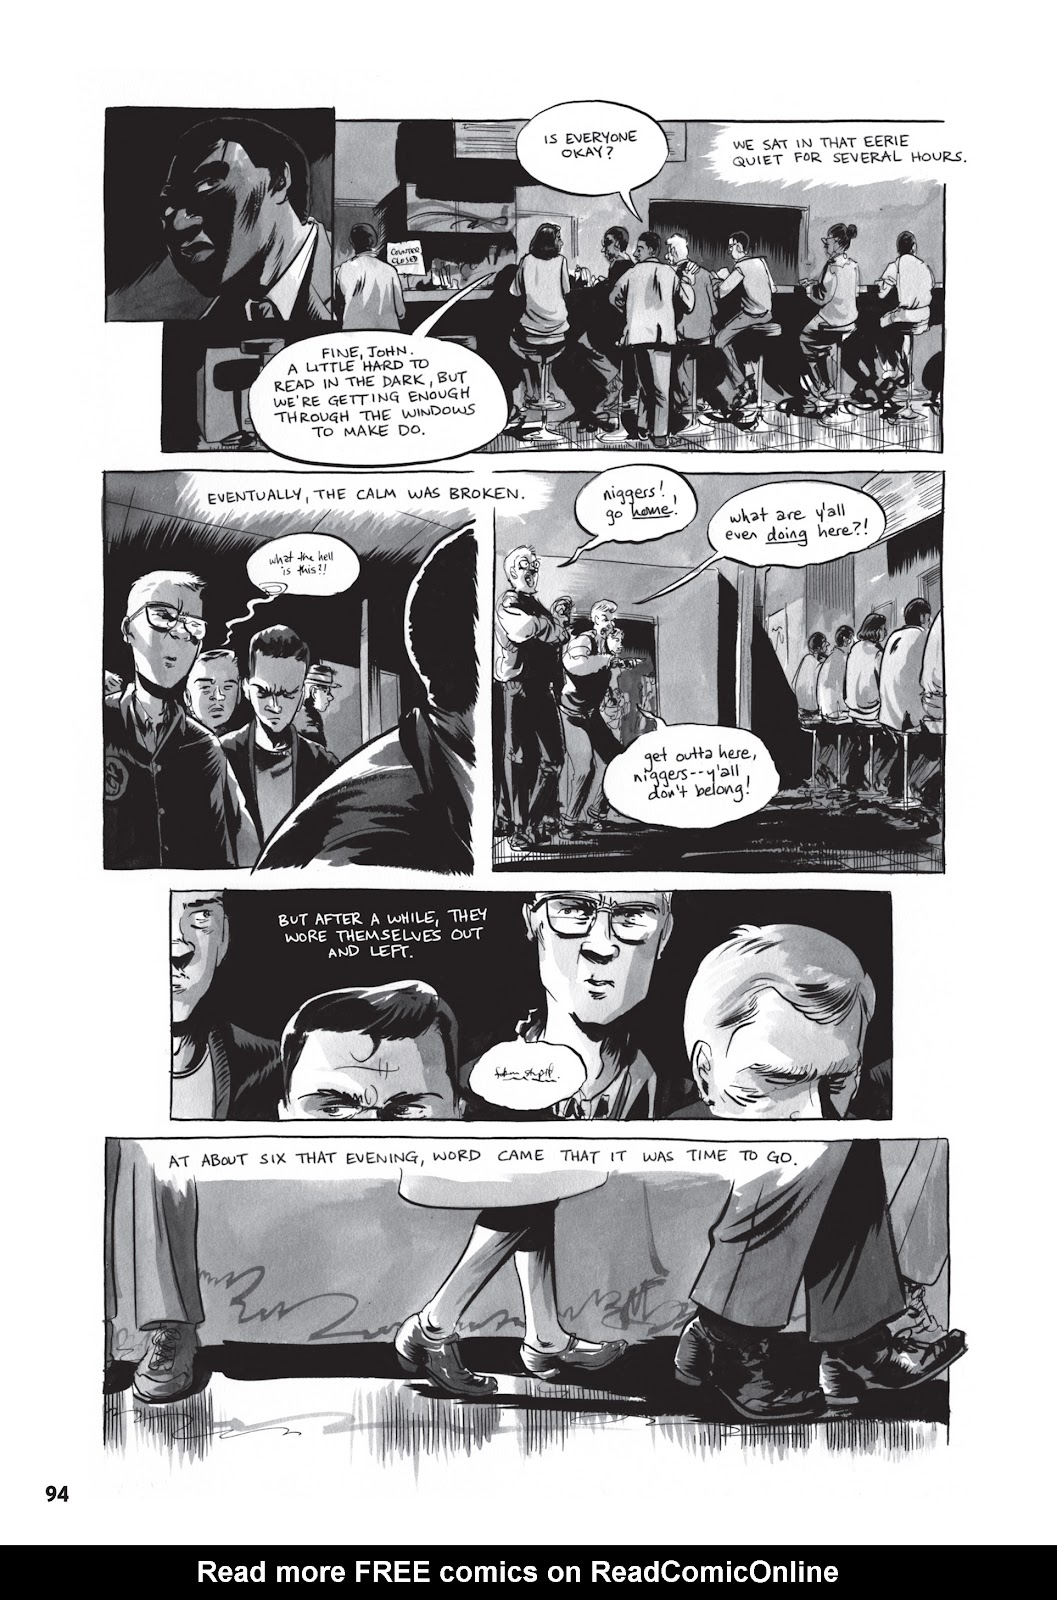 March 1 Page 91